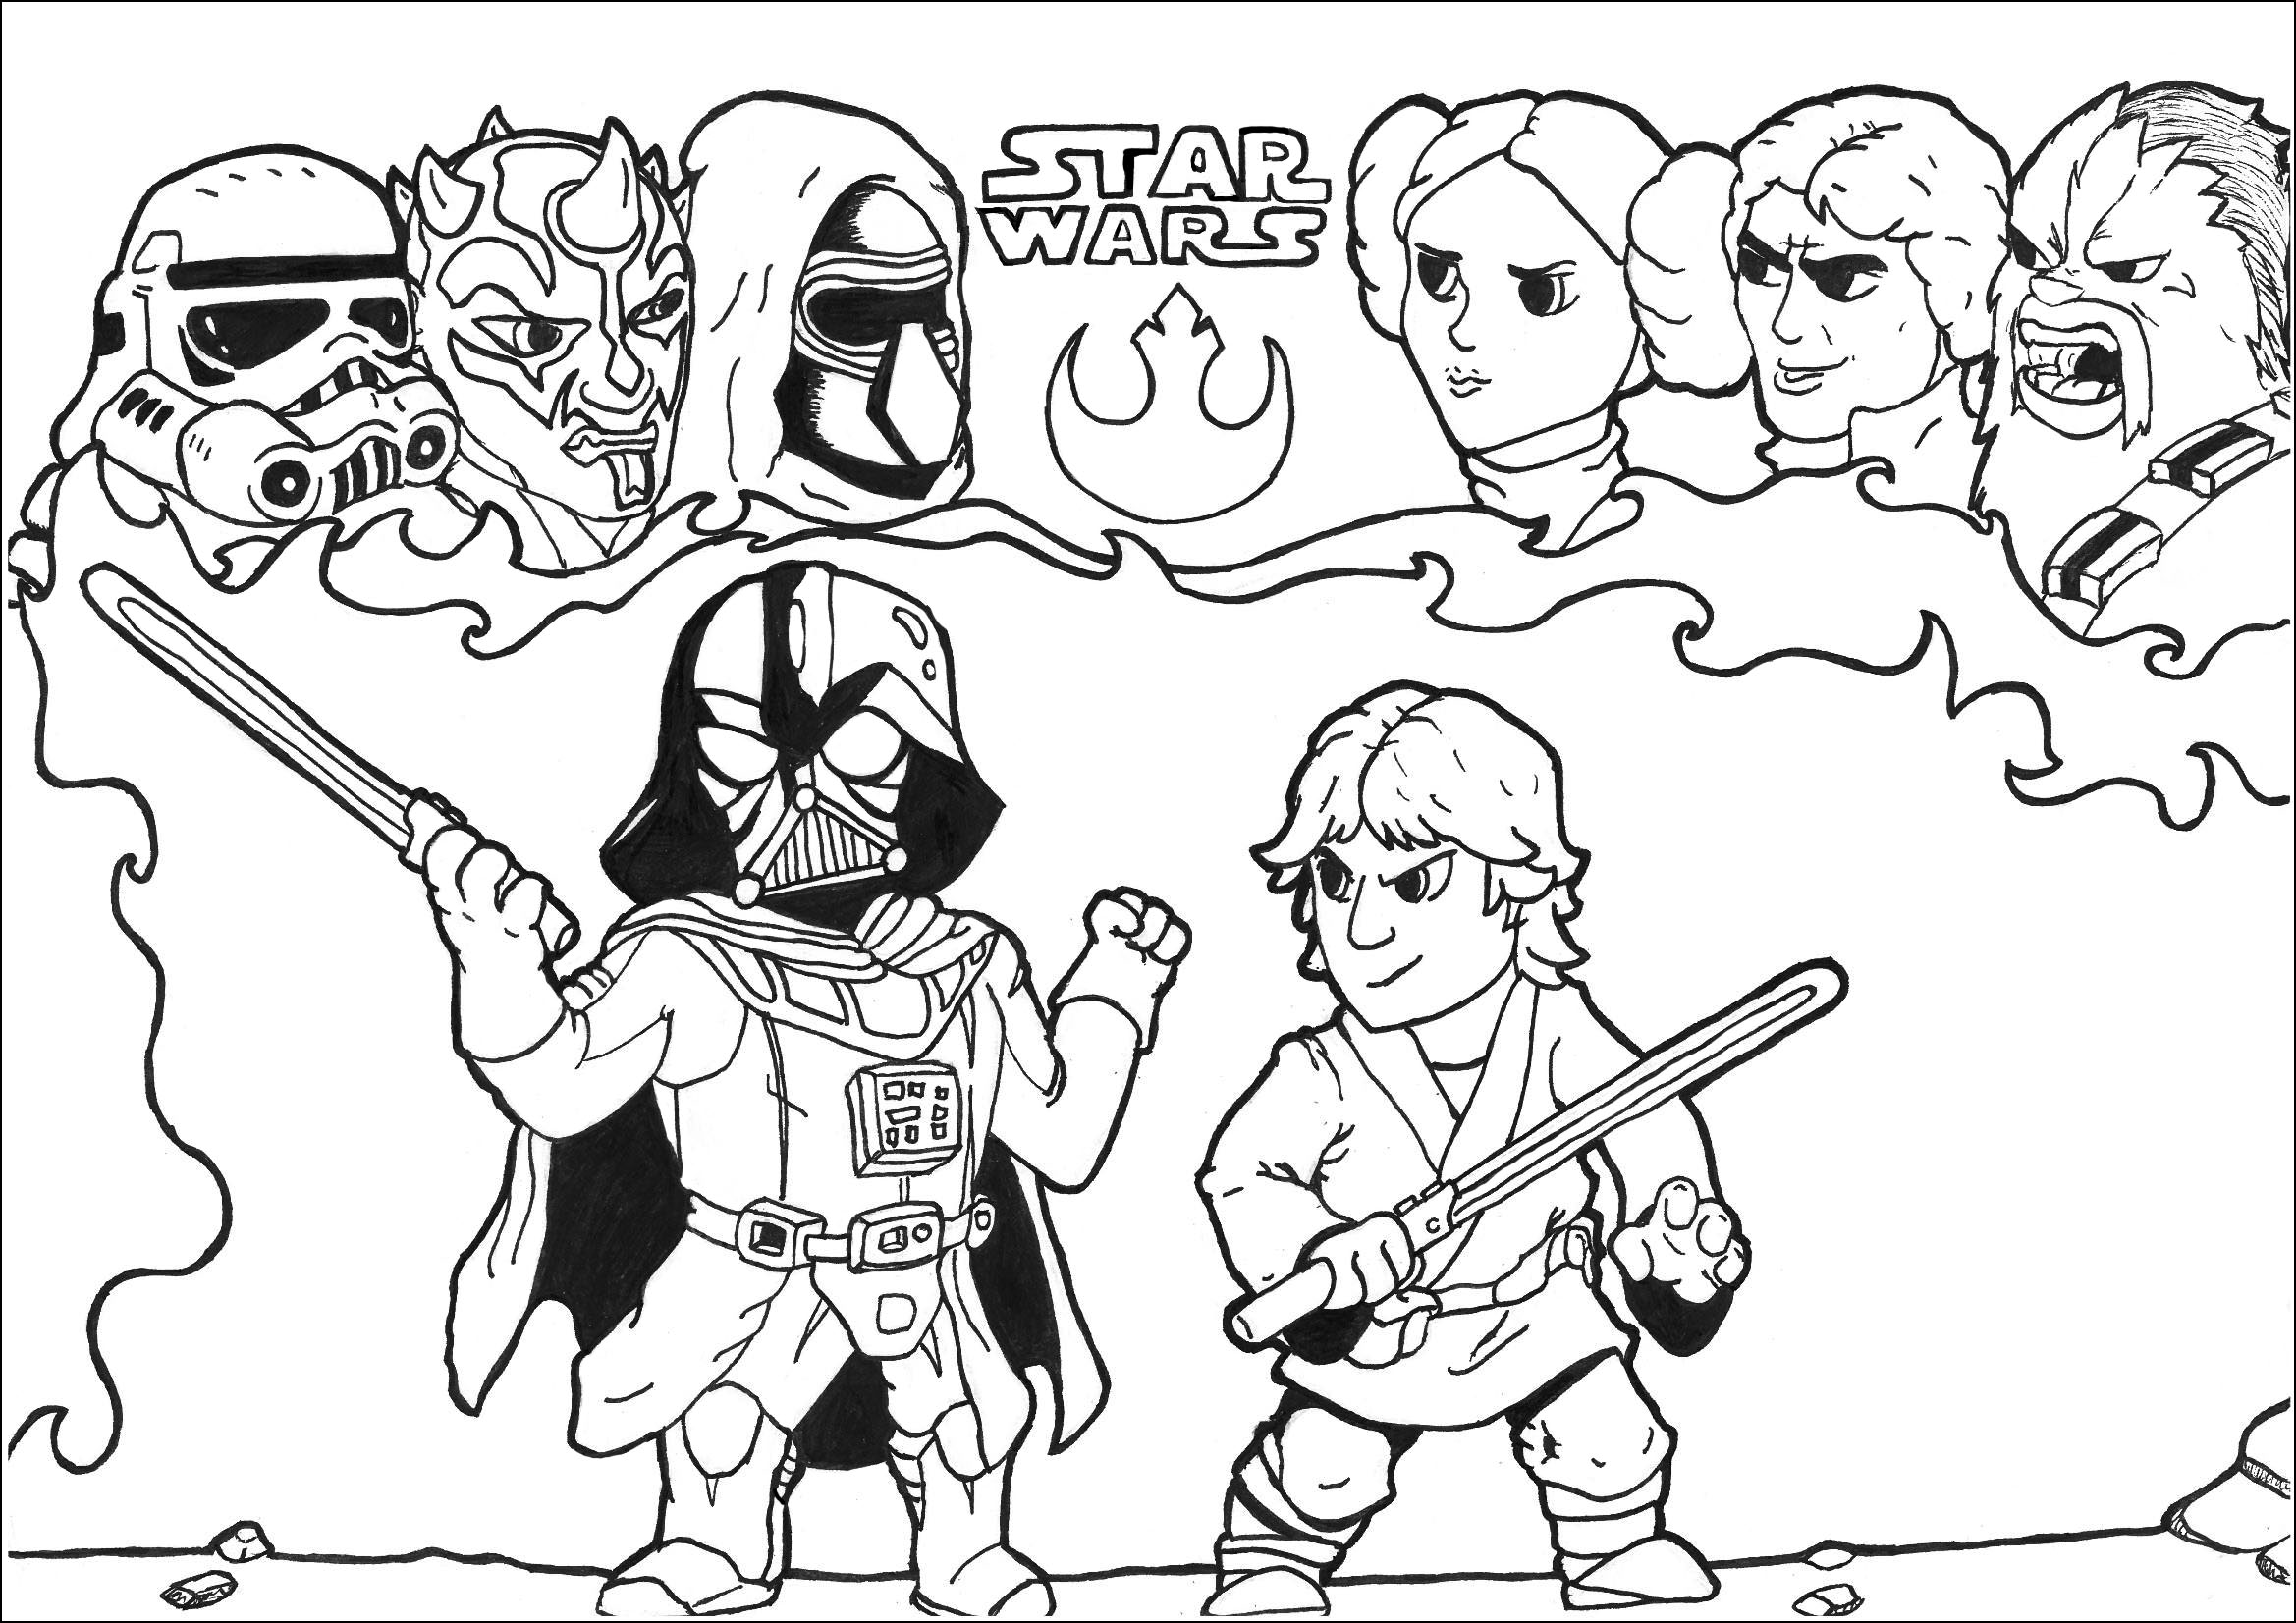 Star wars luke darth vader fight Movies Adult Coloring Pages